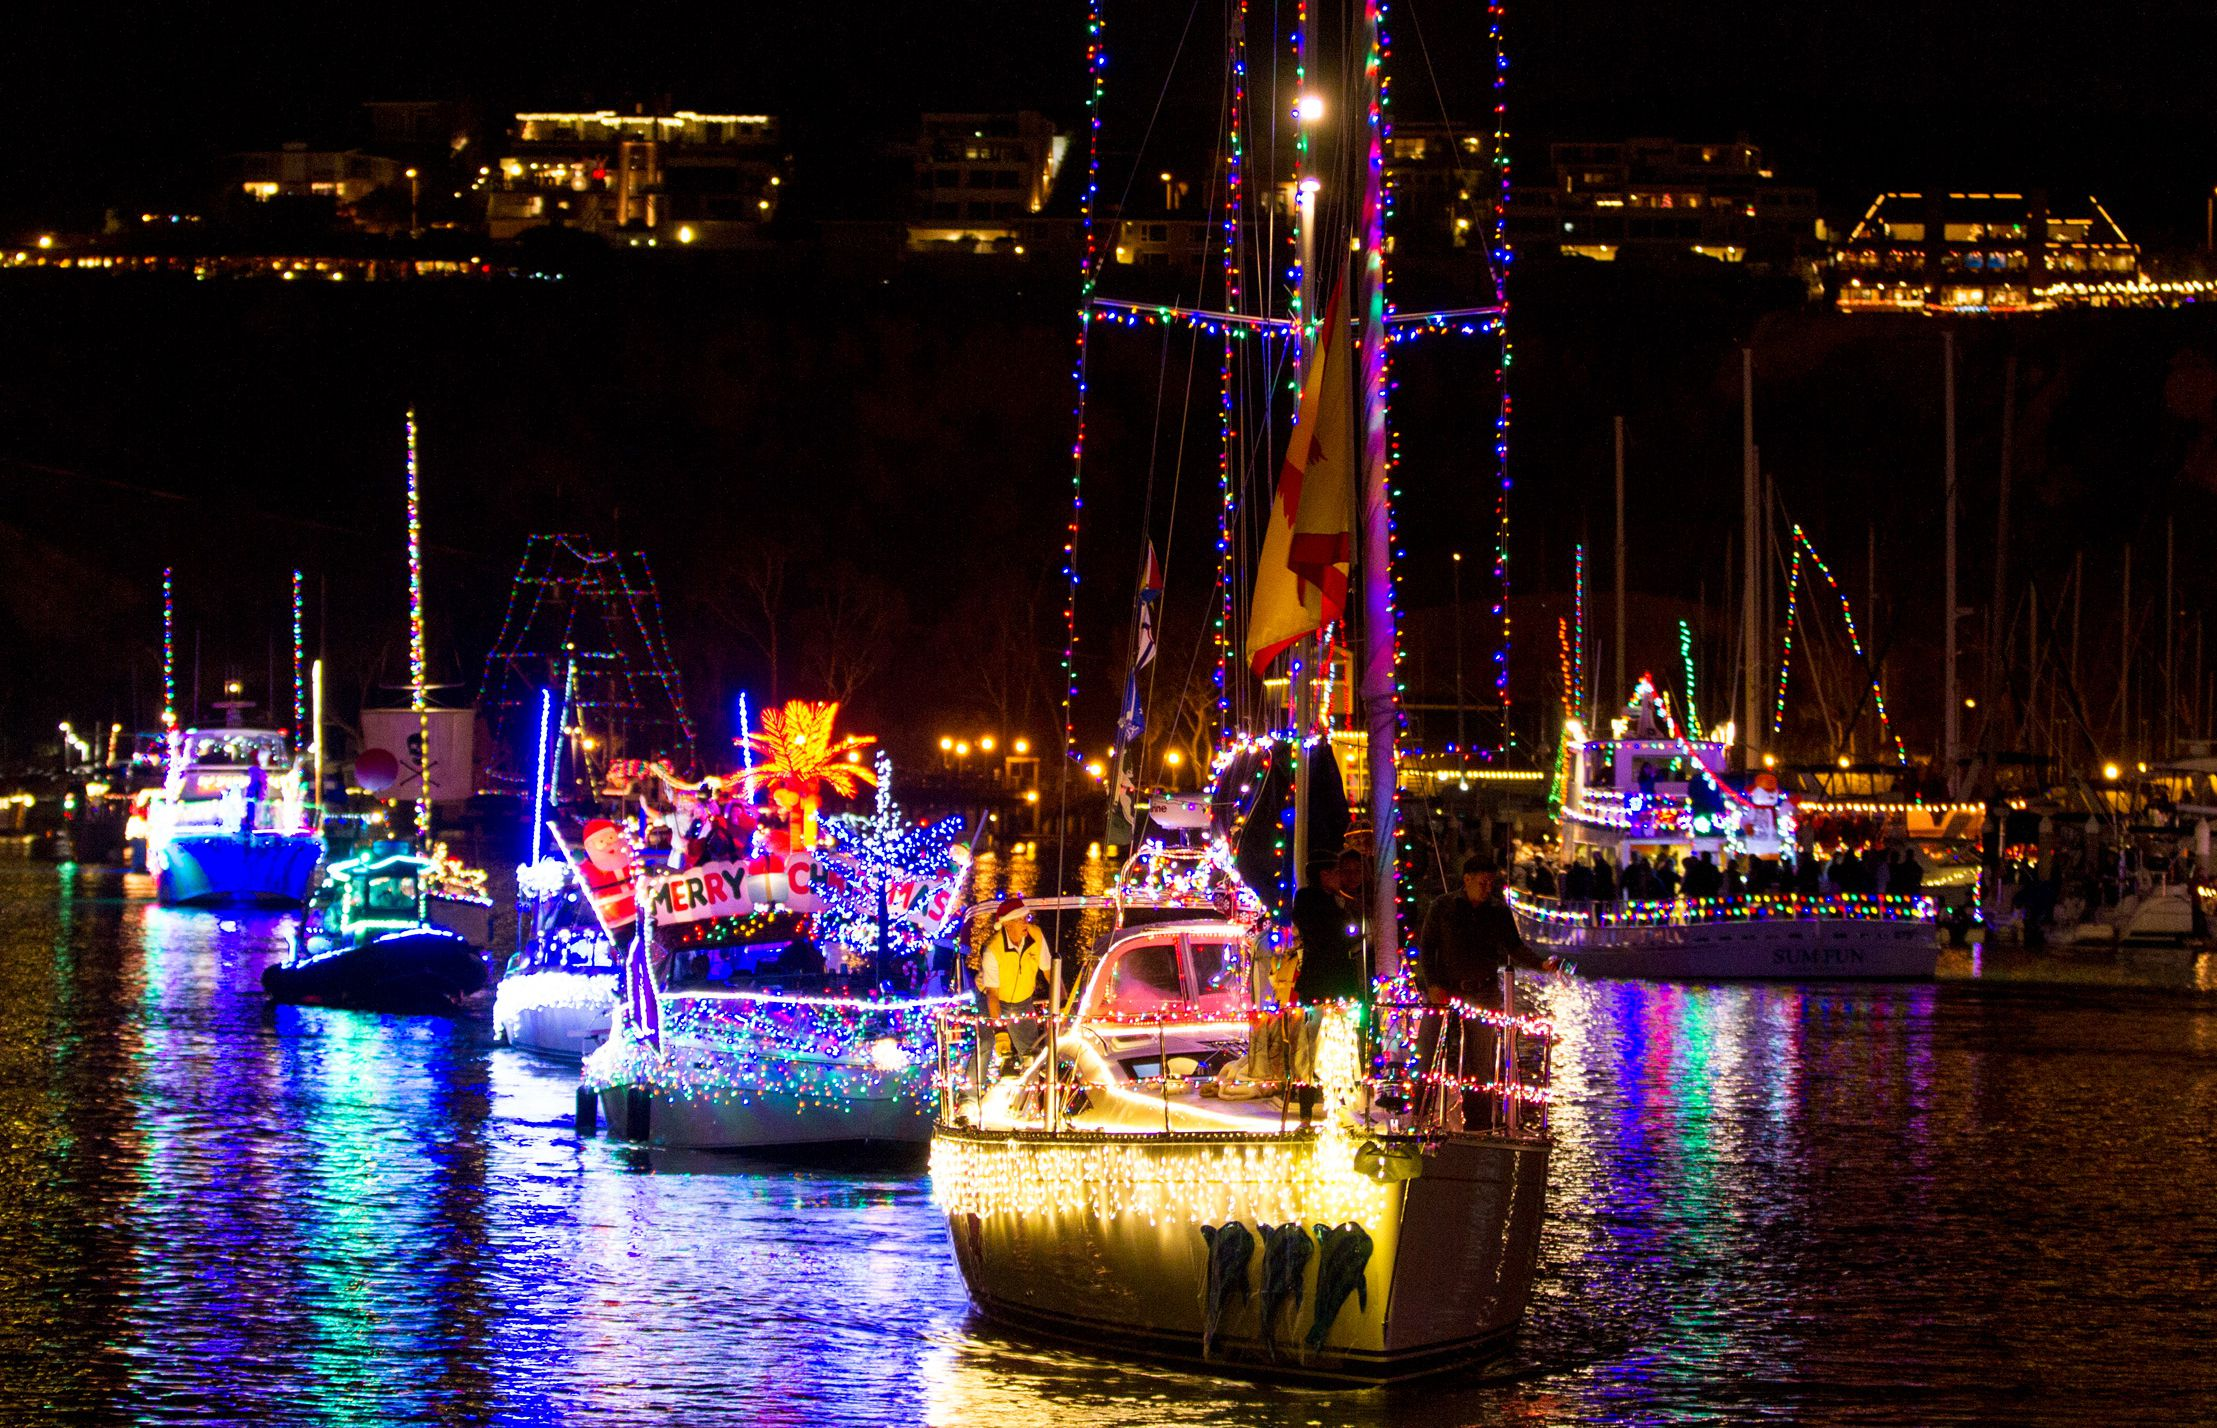 Naples Long Beach Christmas Lights 2018.Christmas Boat Parades In La And Orange Counties